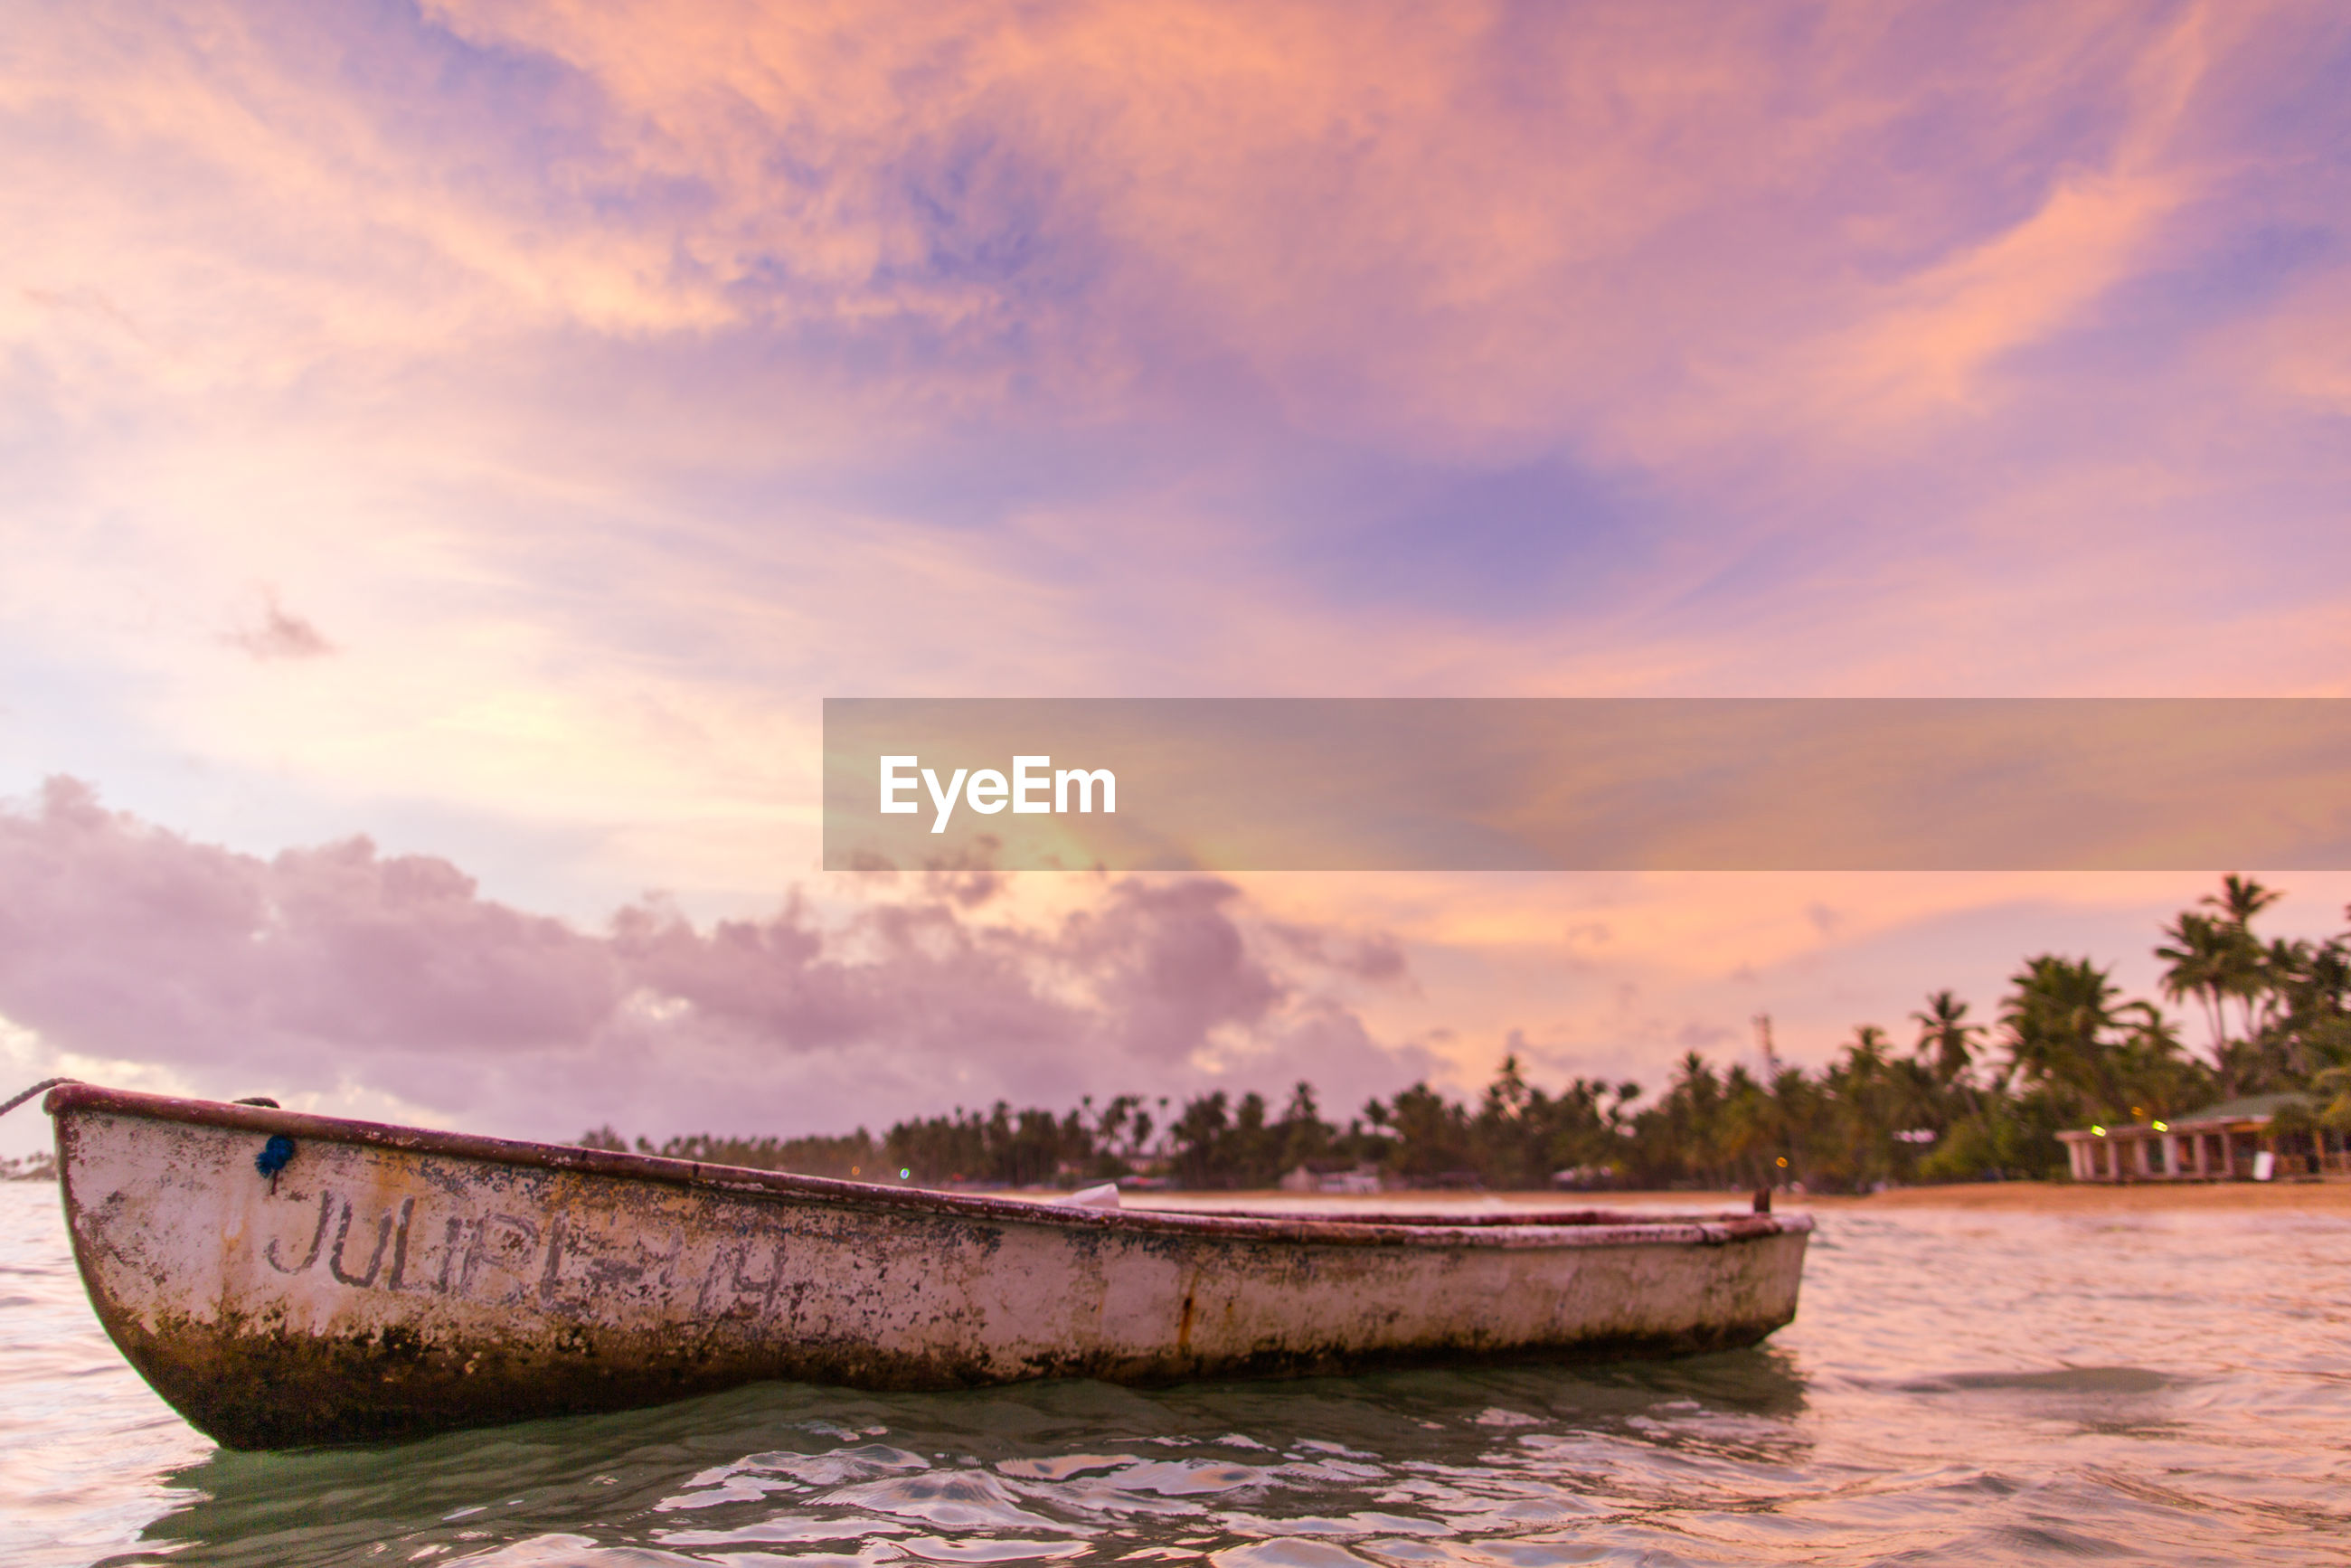 water, nautical vessel, transportation, tranquil scene, boat, waterfront, tranquility, cloud, scenics, sky, calm, nature, day, cloud - sky, beauty in nature, cloudy, sea, outdoors, cloudscape, dramatic sky, ocean, surface level, tourism